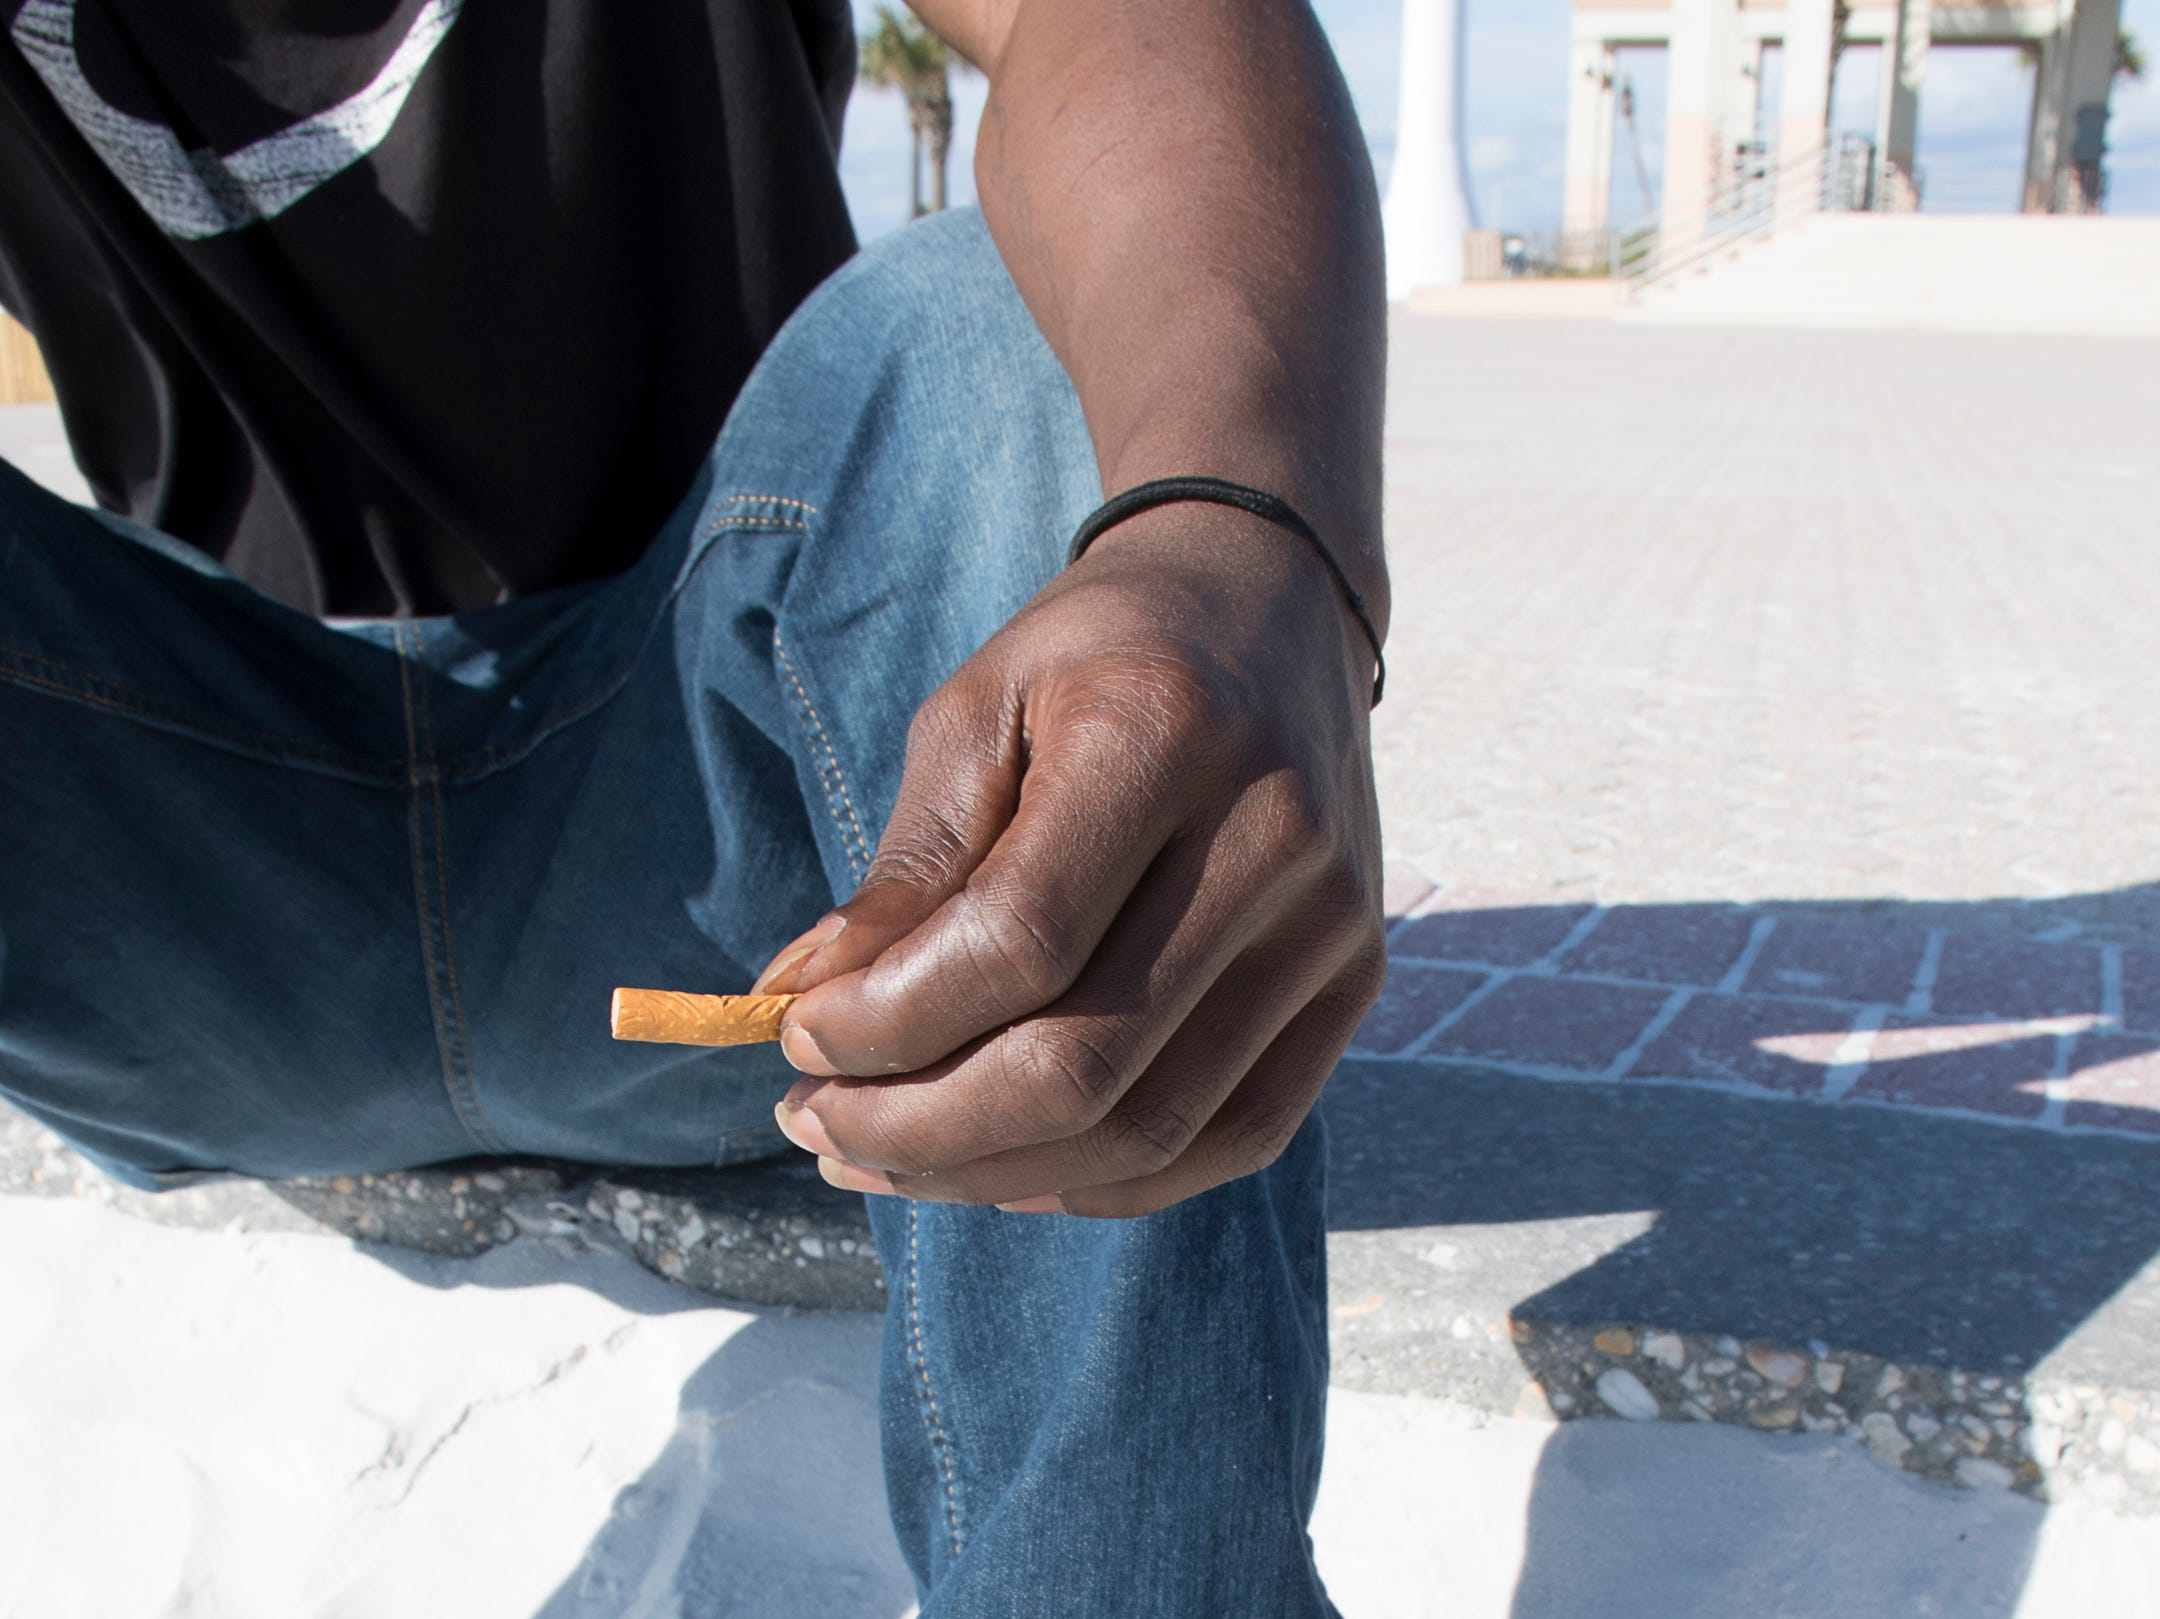 La-Mikal Kyles, of Century, Florida, holds his cigarette butt for later disposal as he sits along the edge of the sand at Casino Beach in Pensacola on Tuesday, January 8, 2019.  The Florida Legislature is proposing a bill that would ban smoking on all beaches in the state.